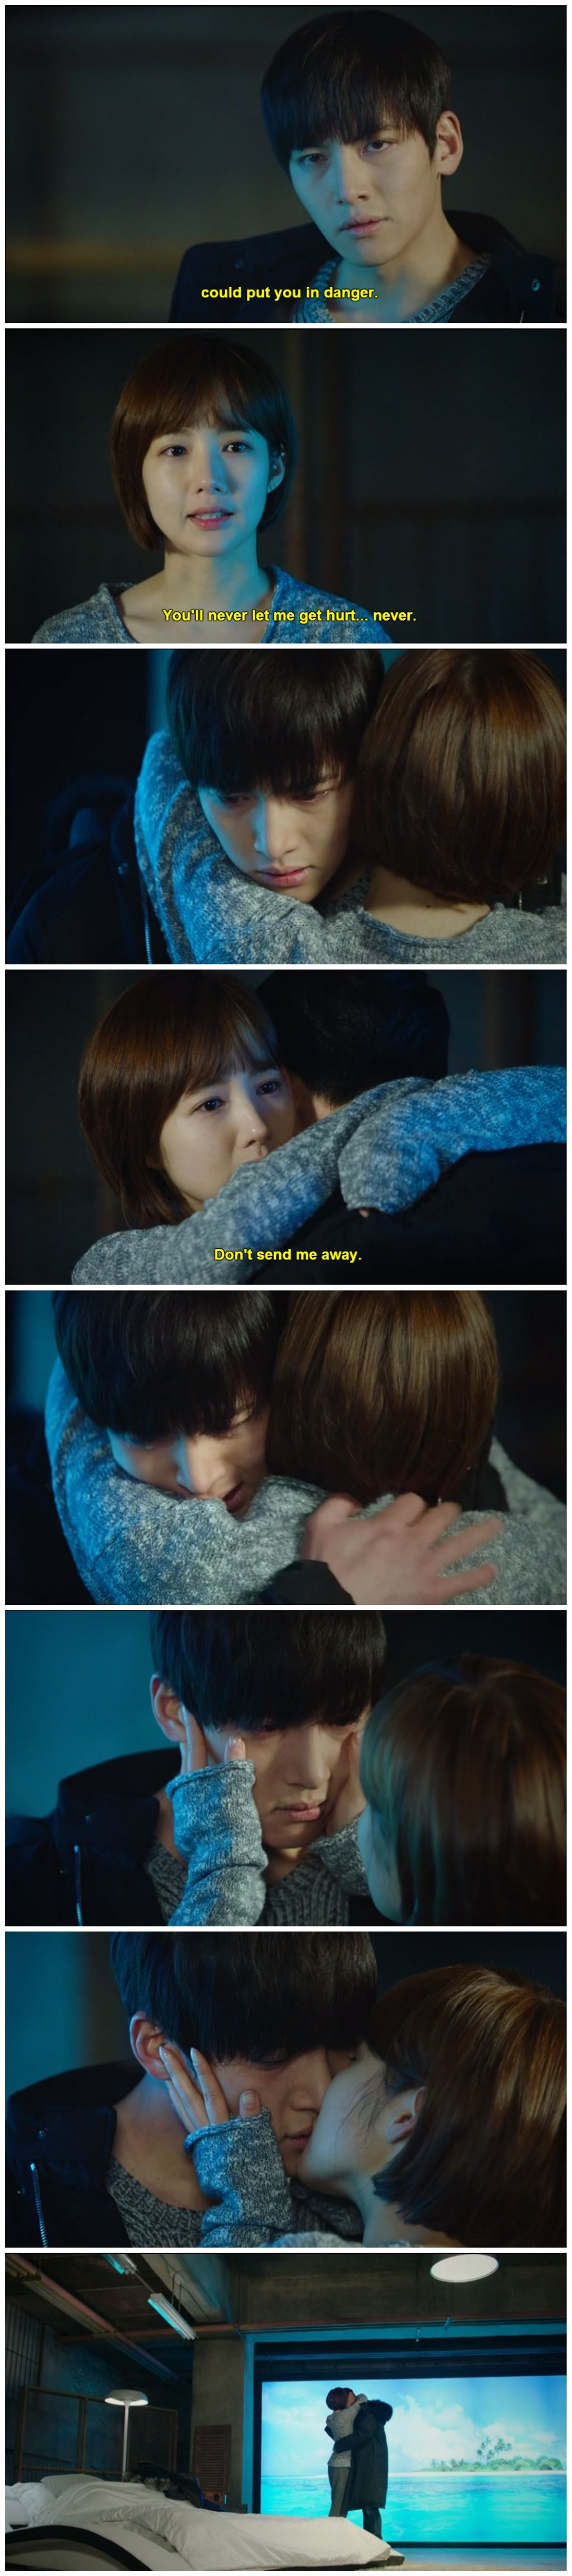 K-drama Healer! Ok, my heart melted at this scene  Lol | K